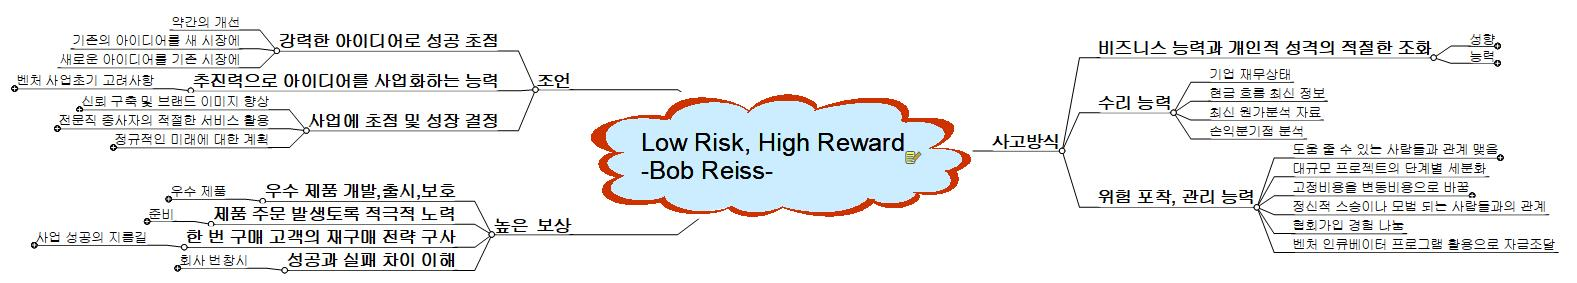 Low lisk High Reward 이미지